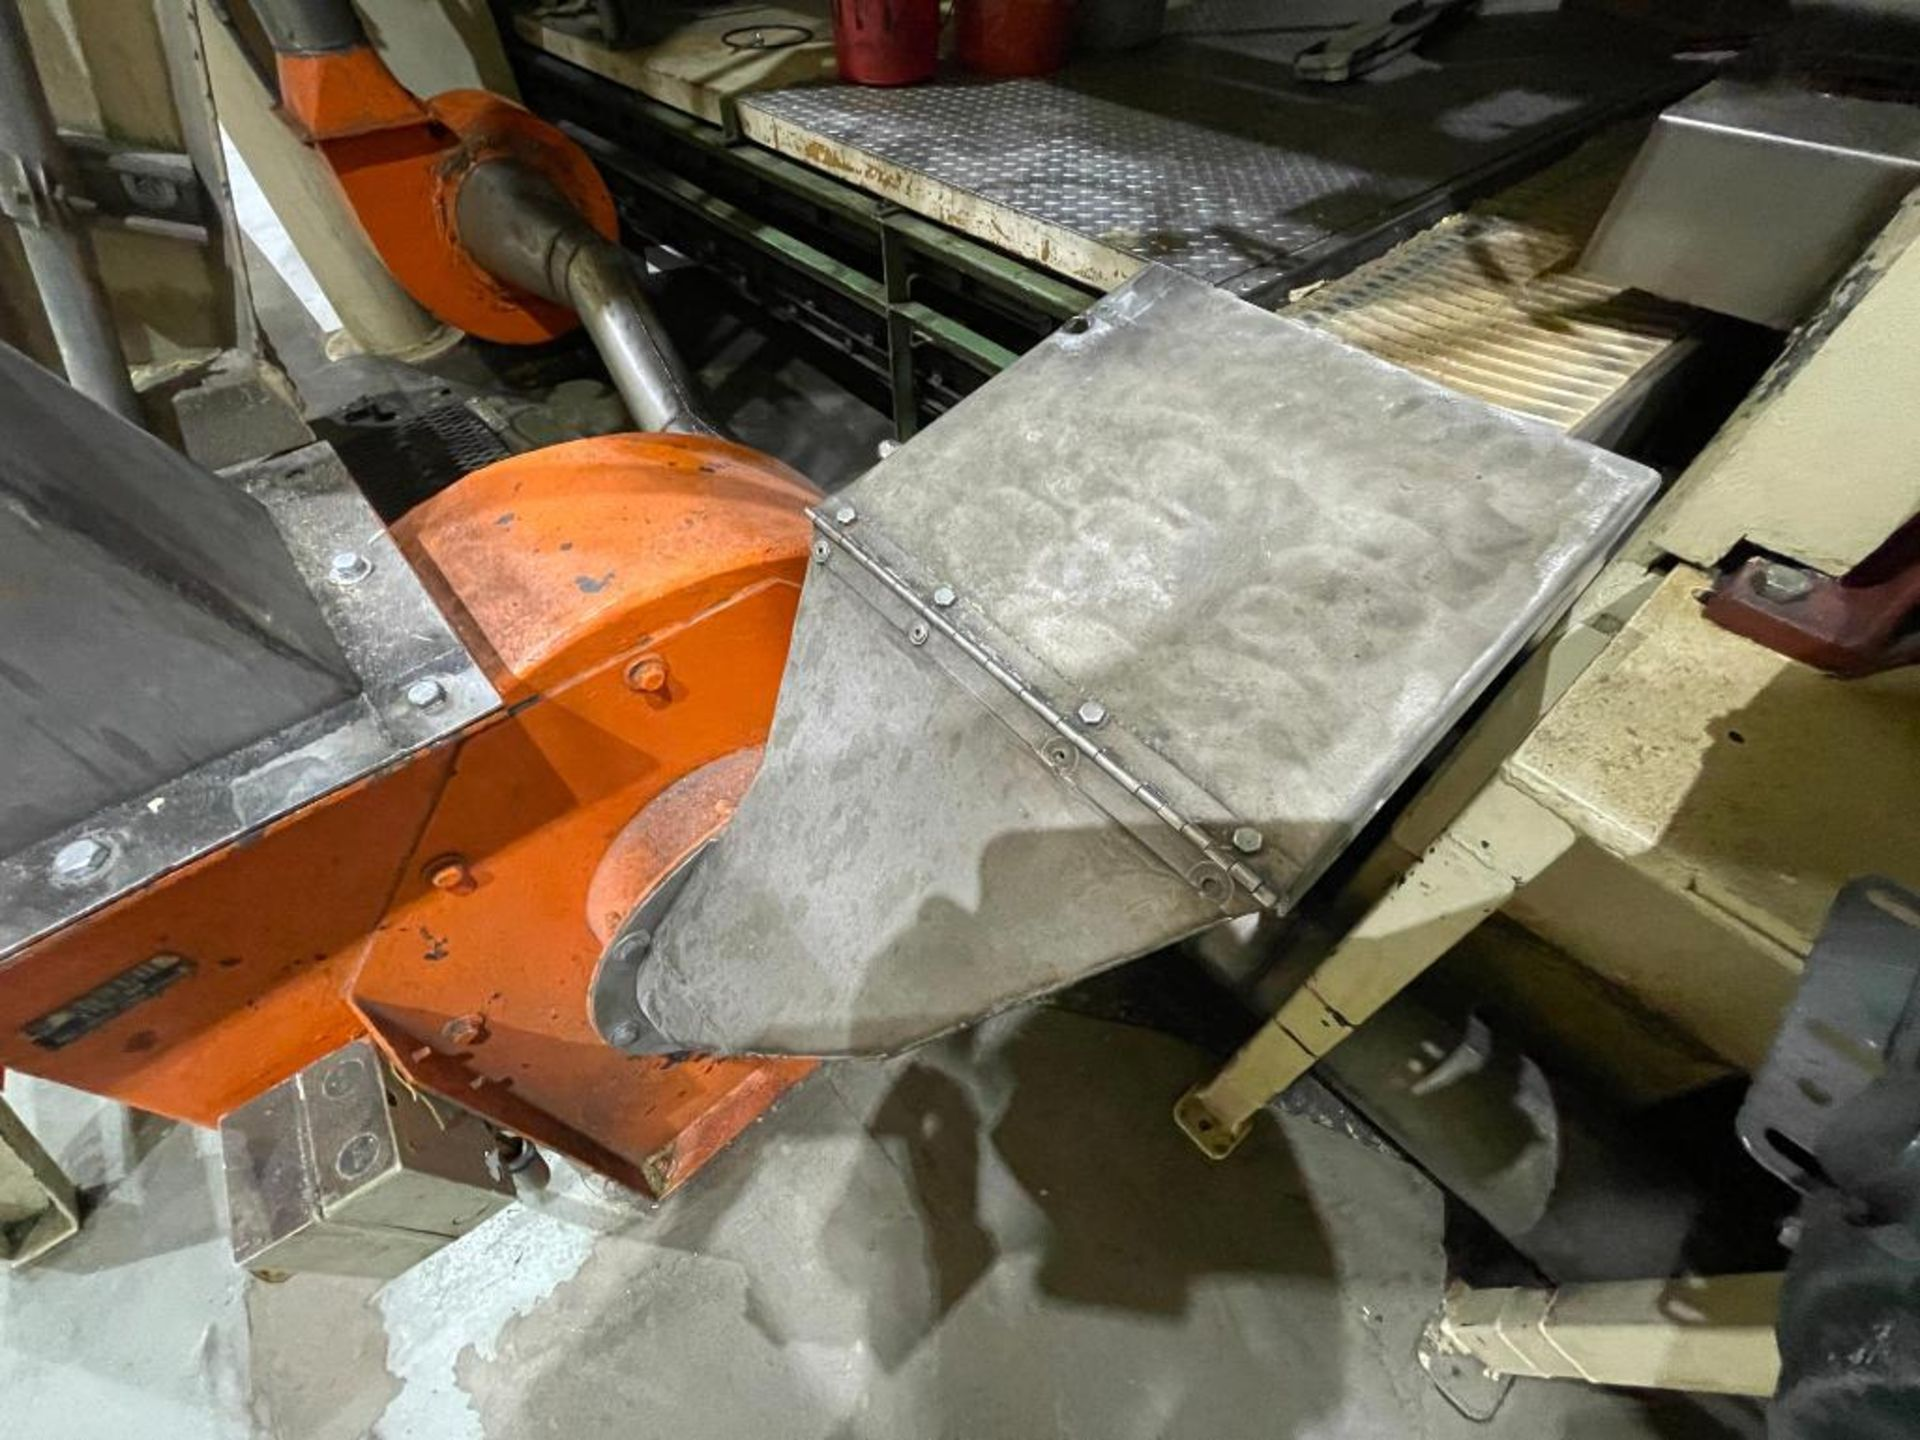 scrap recycle blower - Image 15 of 17